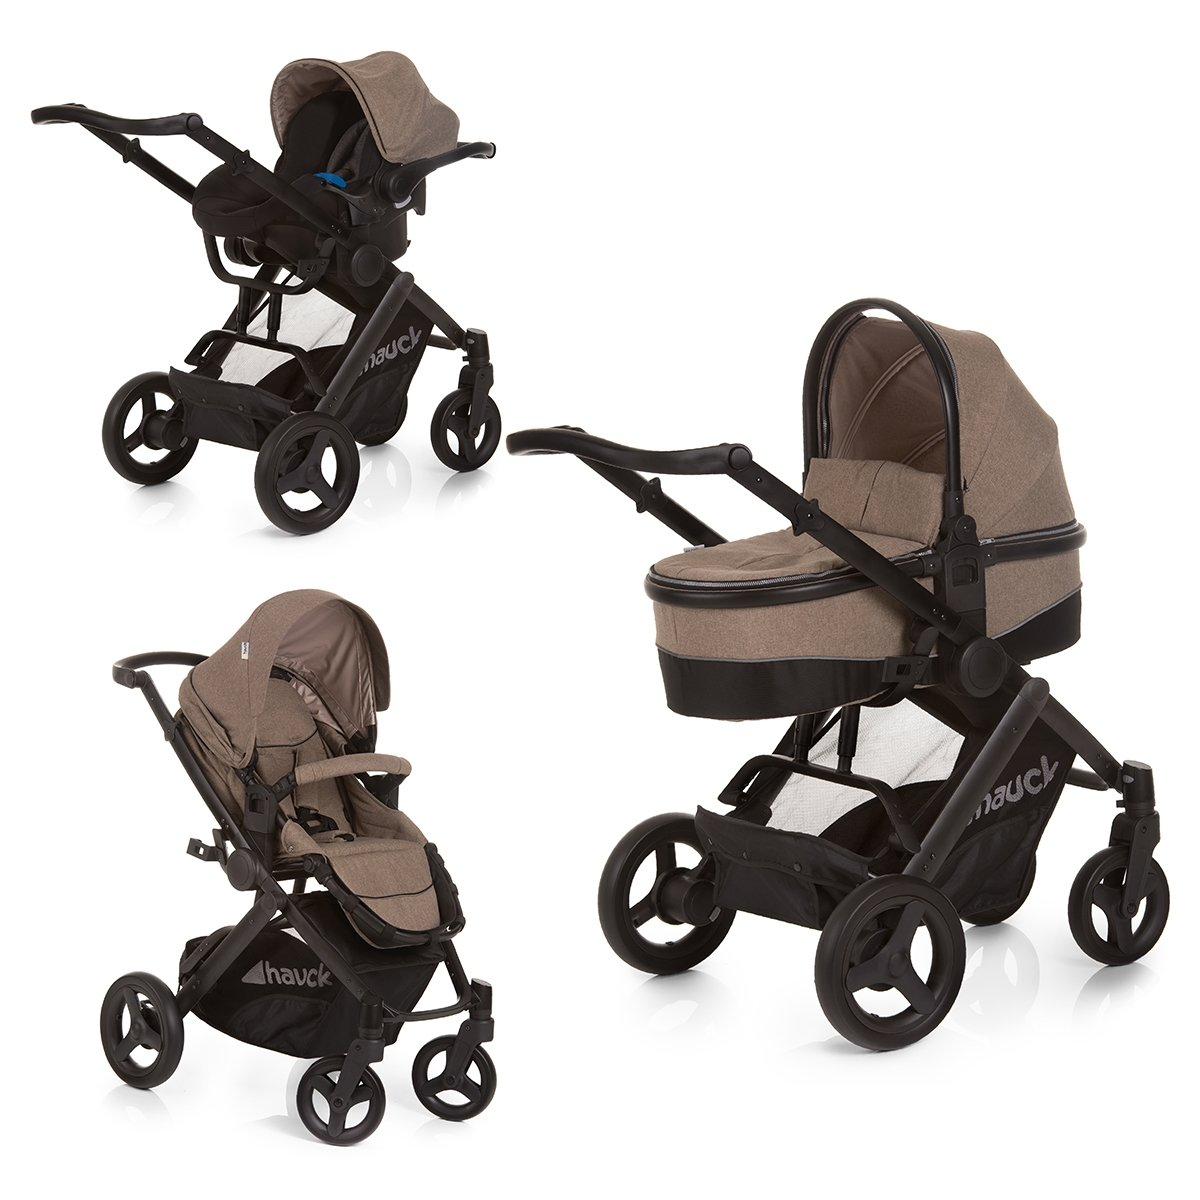 carucior copii 3 in 1 hauck maxan 4 plus set trio - melange sand